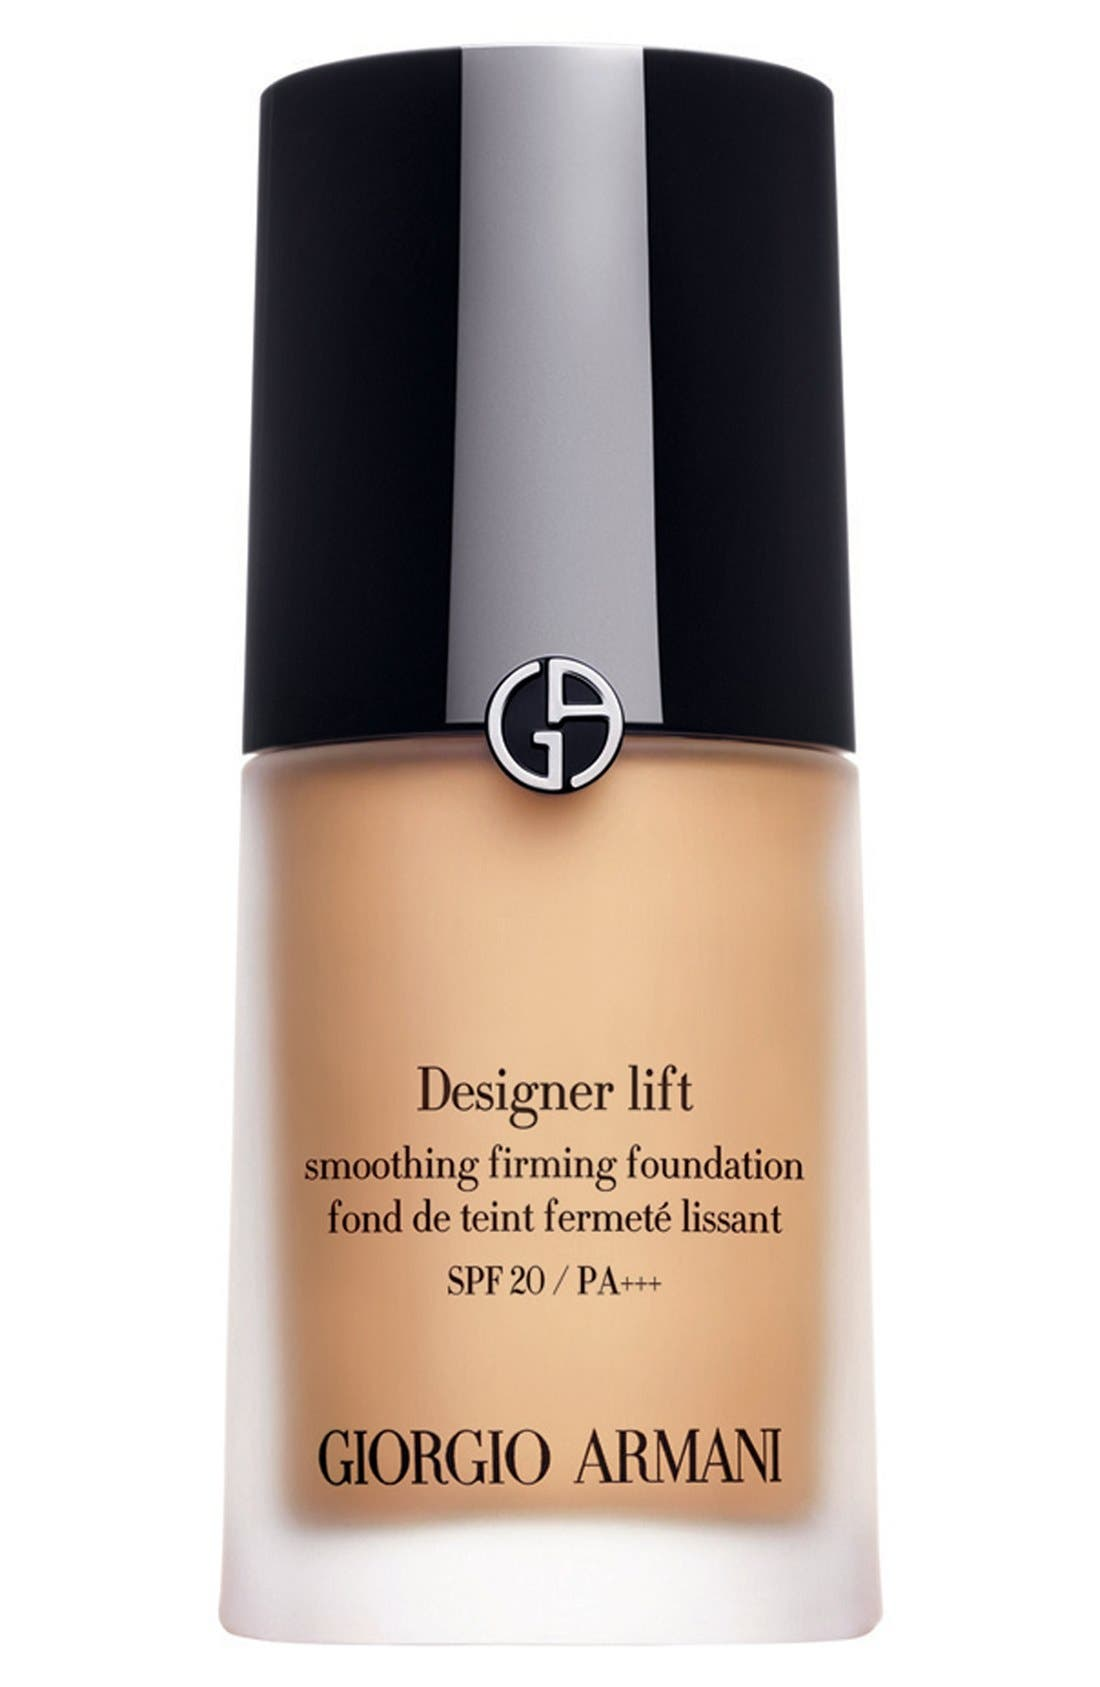 Giorgio Armani 'Designer Lift' Smooth Firming Foundation SPF 20/PA +++